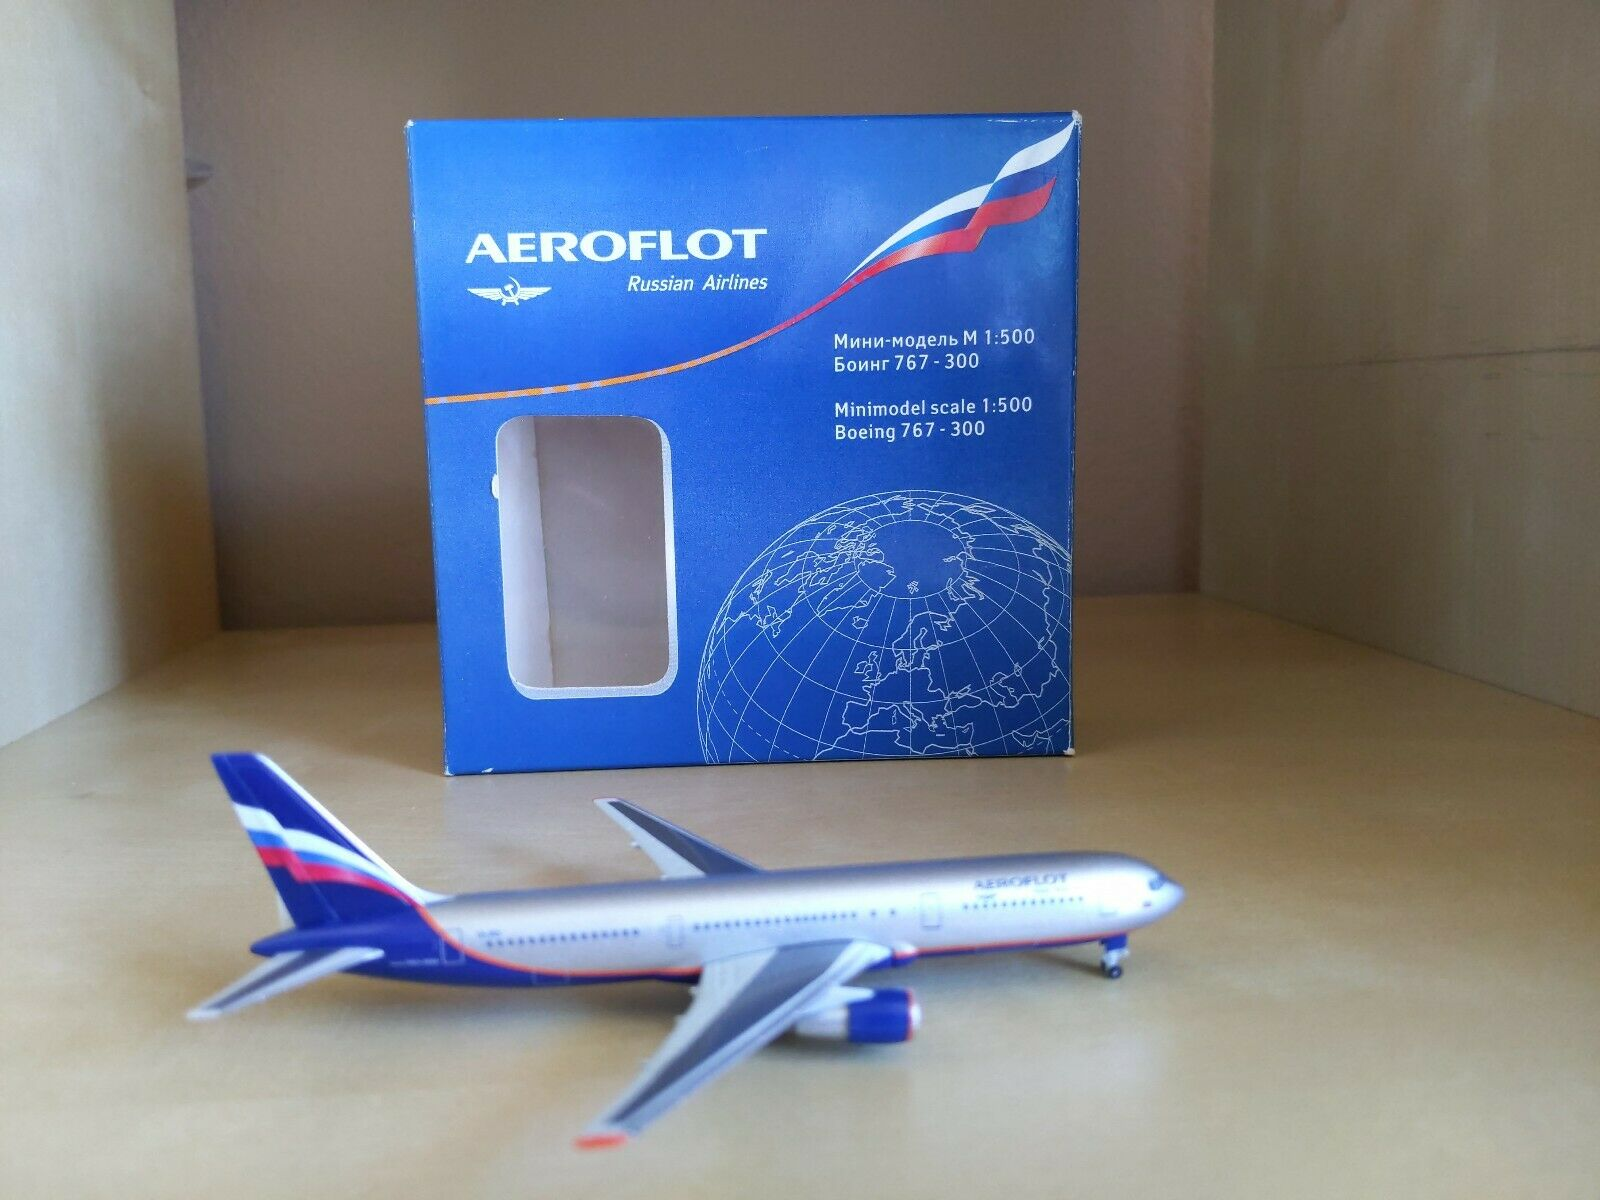 Aeroflot Boeing 767-300 1 500 scale model by herpa